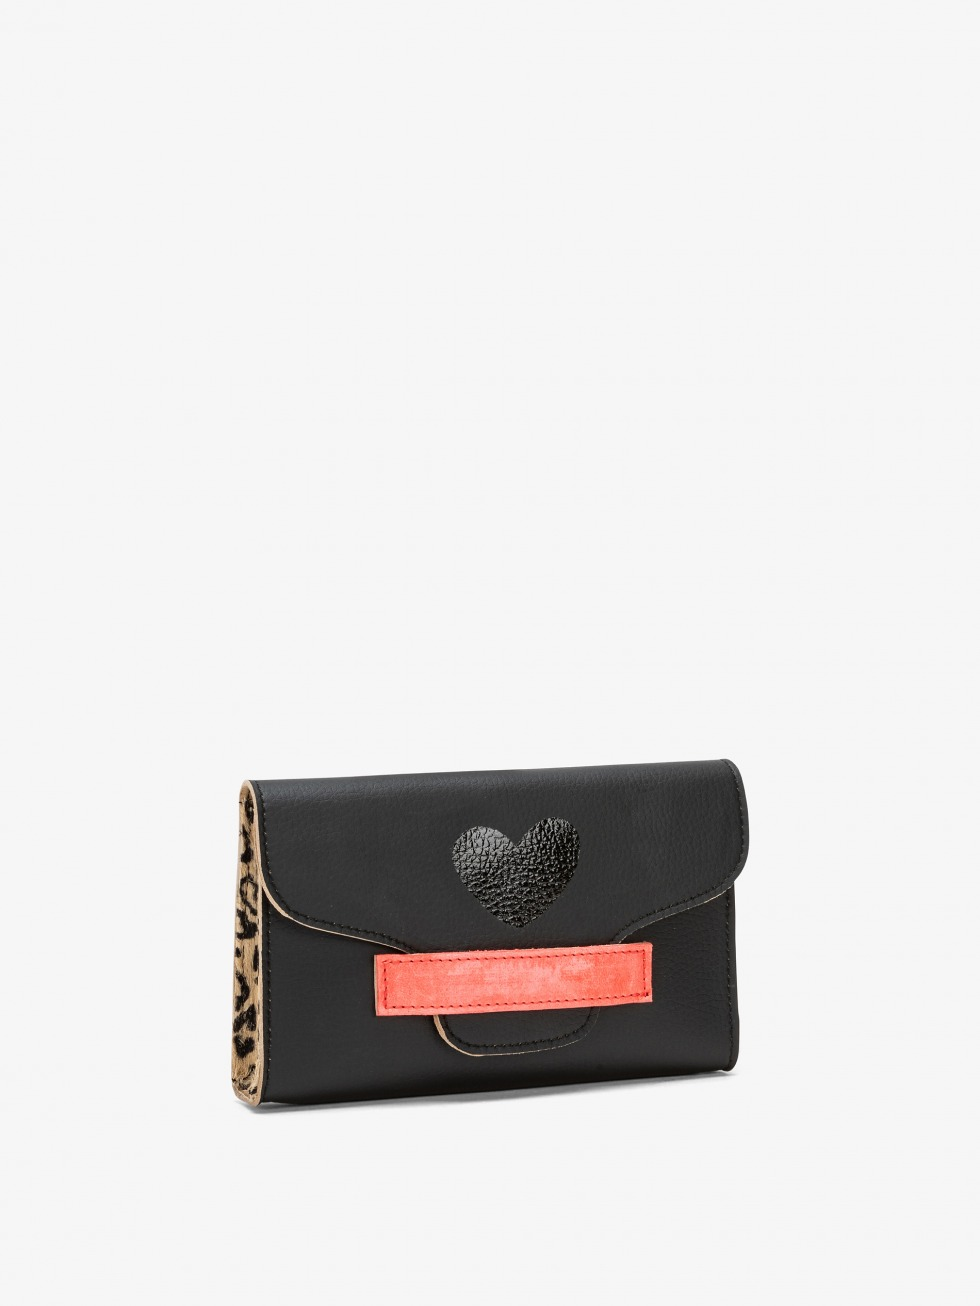 Micro Bag - Leopard Red